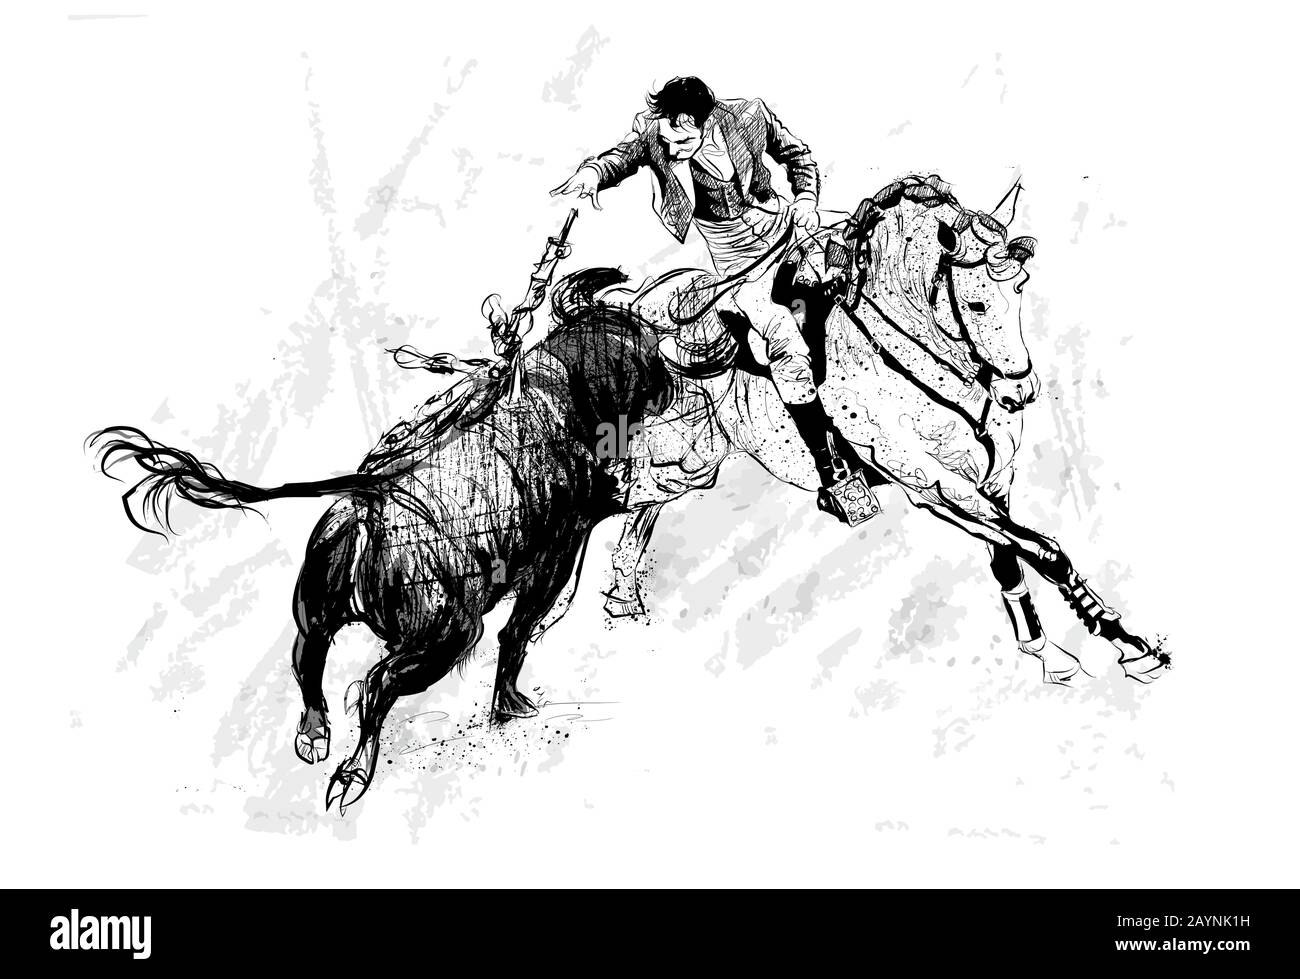 Bullfighter On Horse With Bull During Corrida In Portugal Vector Illustration Ideal For Printing On Fabric Or Paper Poster Or Wallpaper House Dec Stock Vector Image Art Alamy